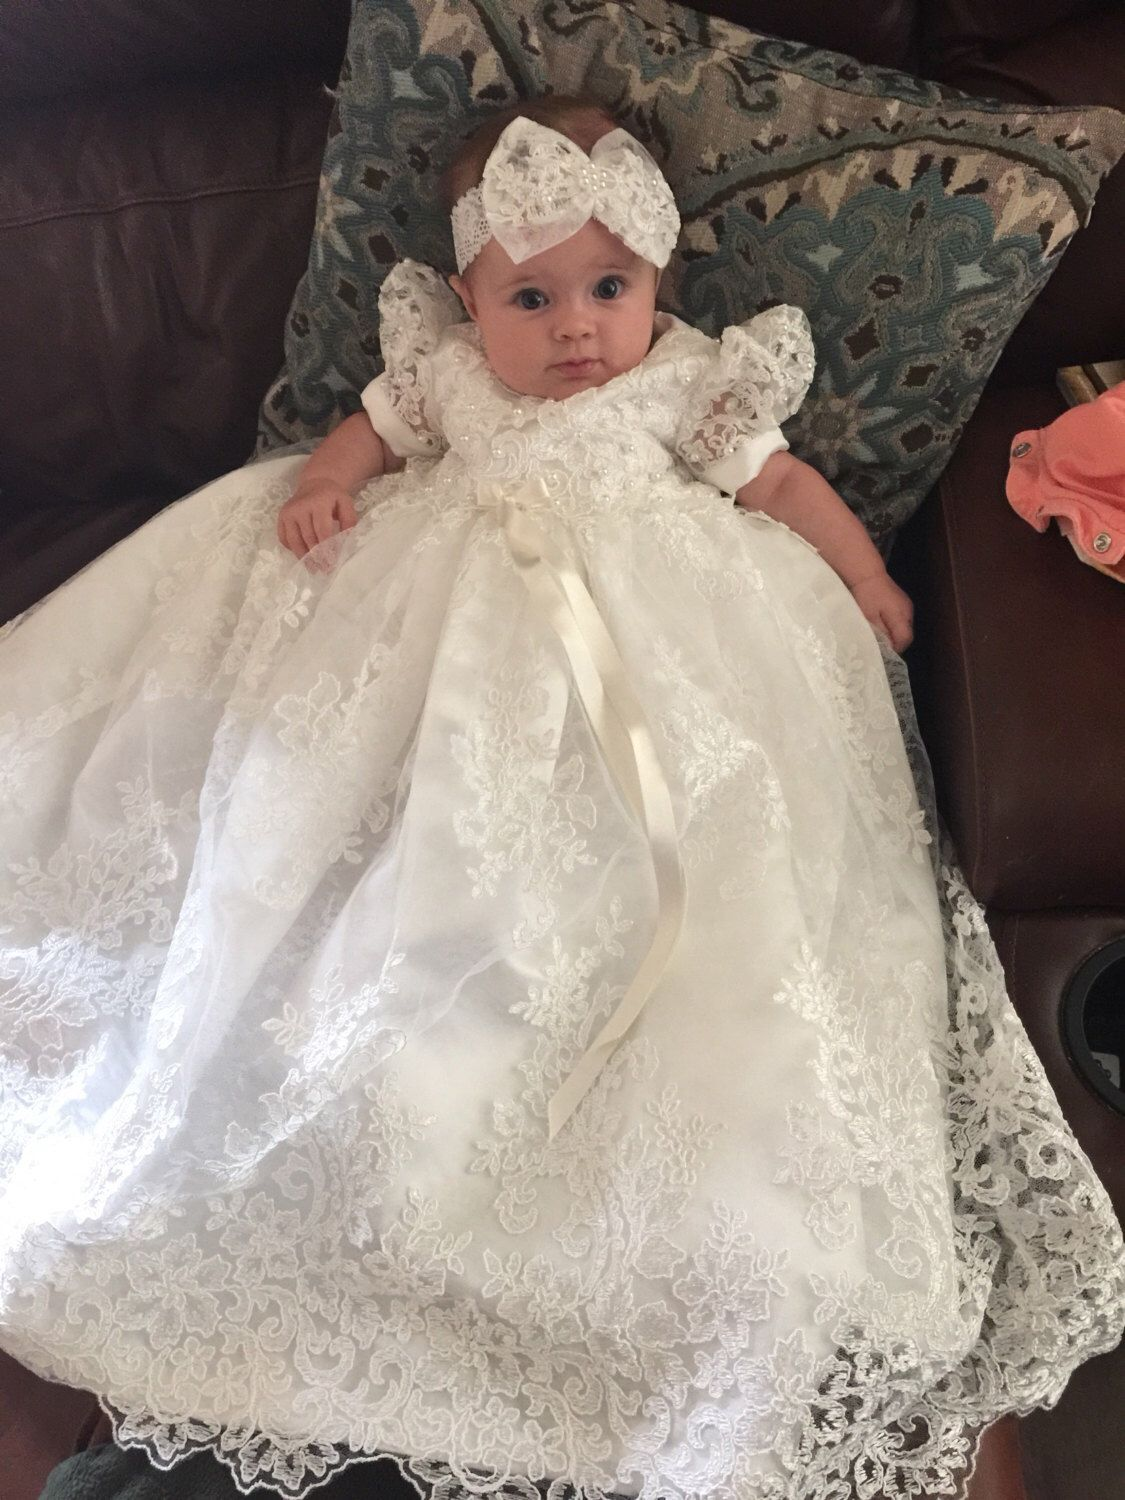 cad7d3b07 ... Baby Girl Birthday Baptism Dresses Custom with Shoes(China). Beaded  Alencon Lace Christening Gown, Baptism Gown by Caremour on Etsy https://